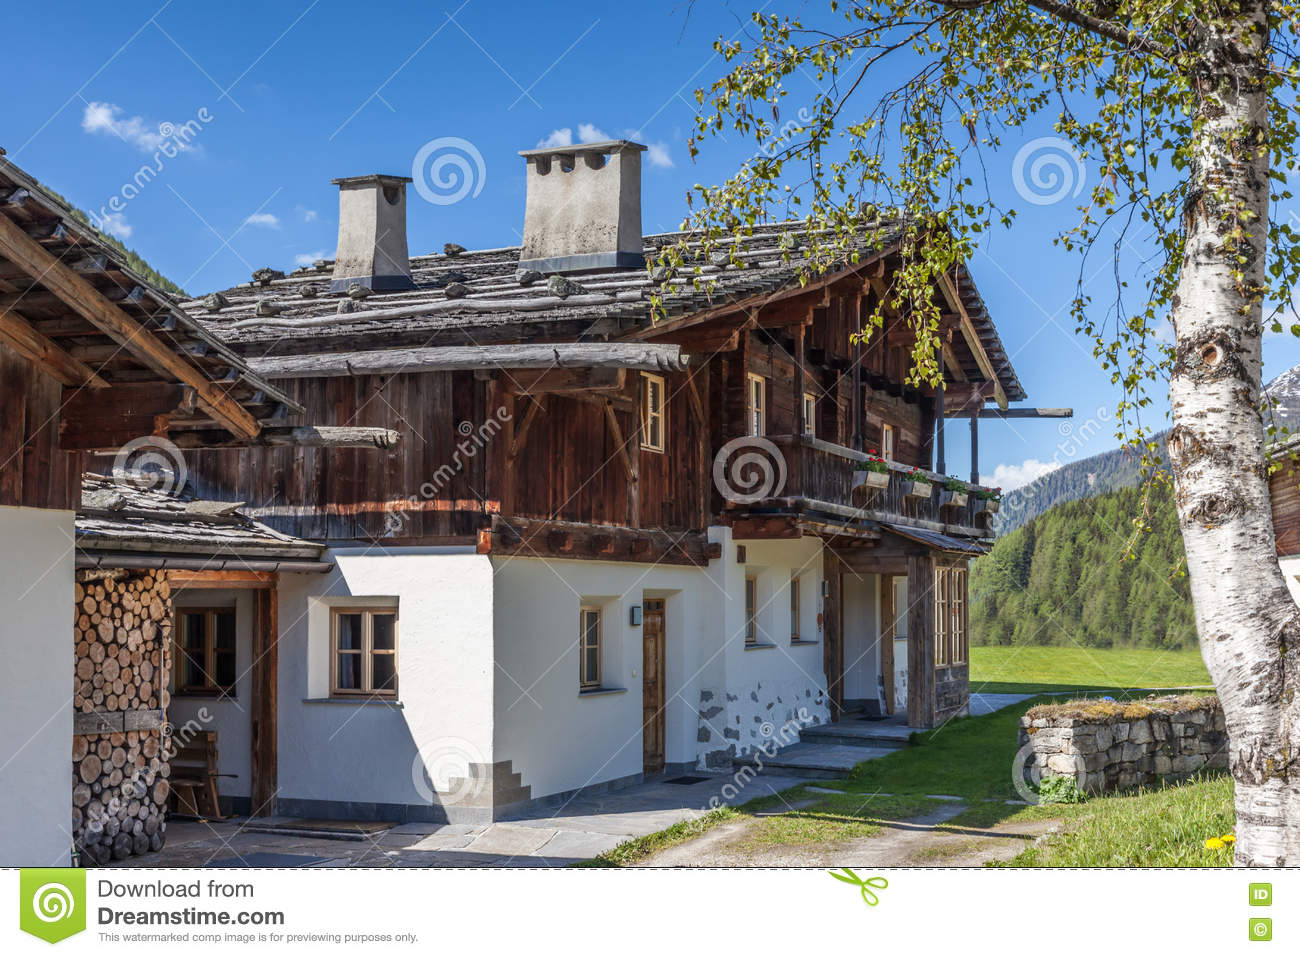 alte bauernh user in s d tirol stockfoto bild von valle sommer 72673972. Black Bedroom Furniture Sets. Home Design Ideas